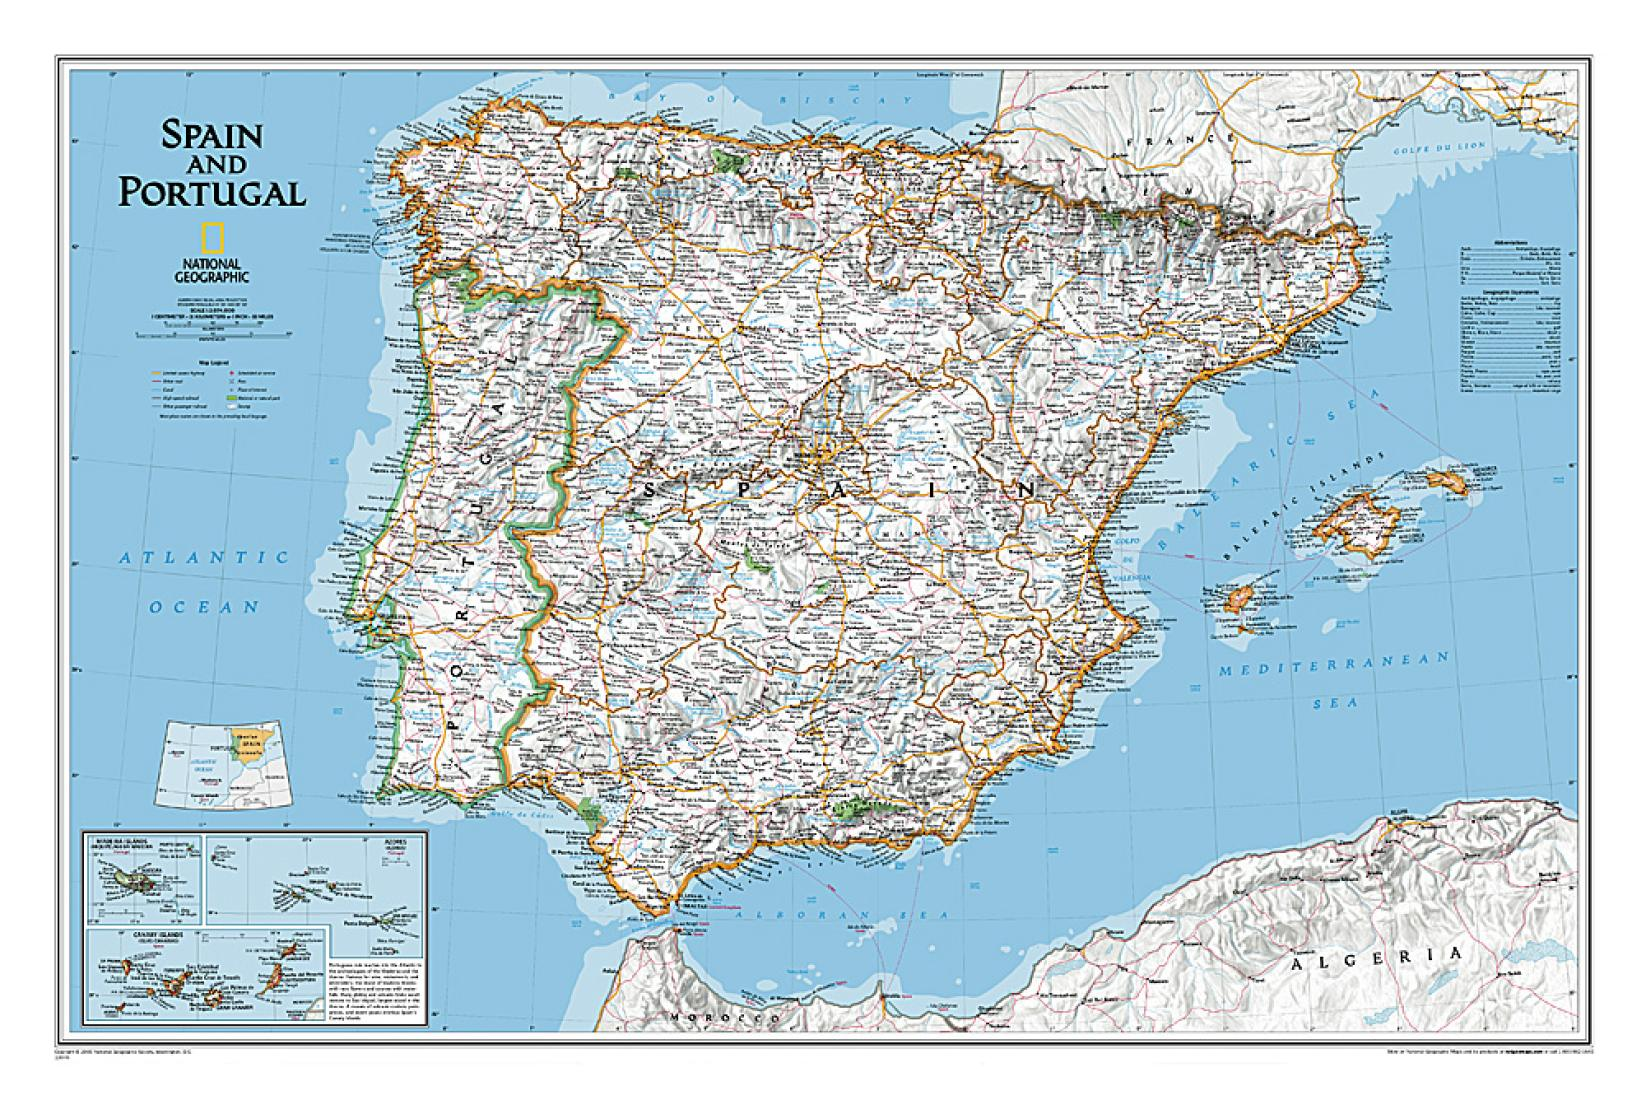 Big Map Of Spain.Spain And Portugal Classic Wall Map Laminated 33 X 22 Inches By National Geographic Maps